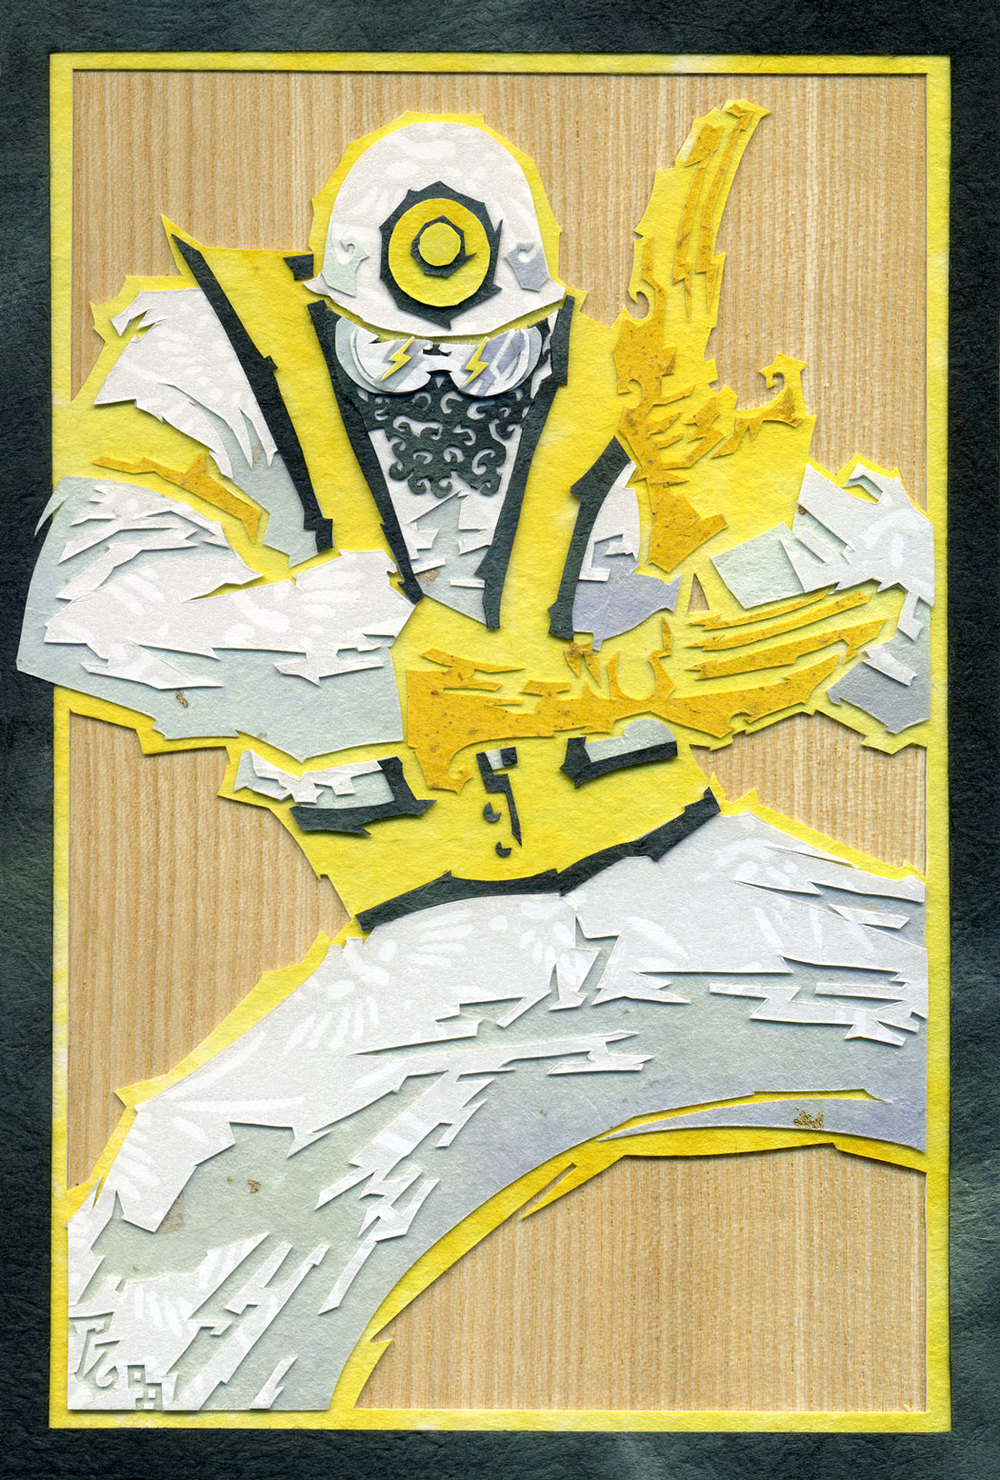 ⊛  Go Beastie Ranger!   ⊛  cut paper + washi + chiyogami / wood   ⊛  6 x 4 in • 150 x 100 mm